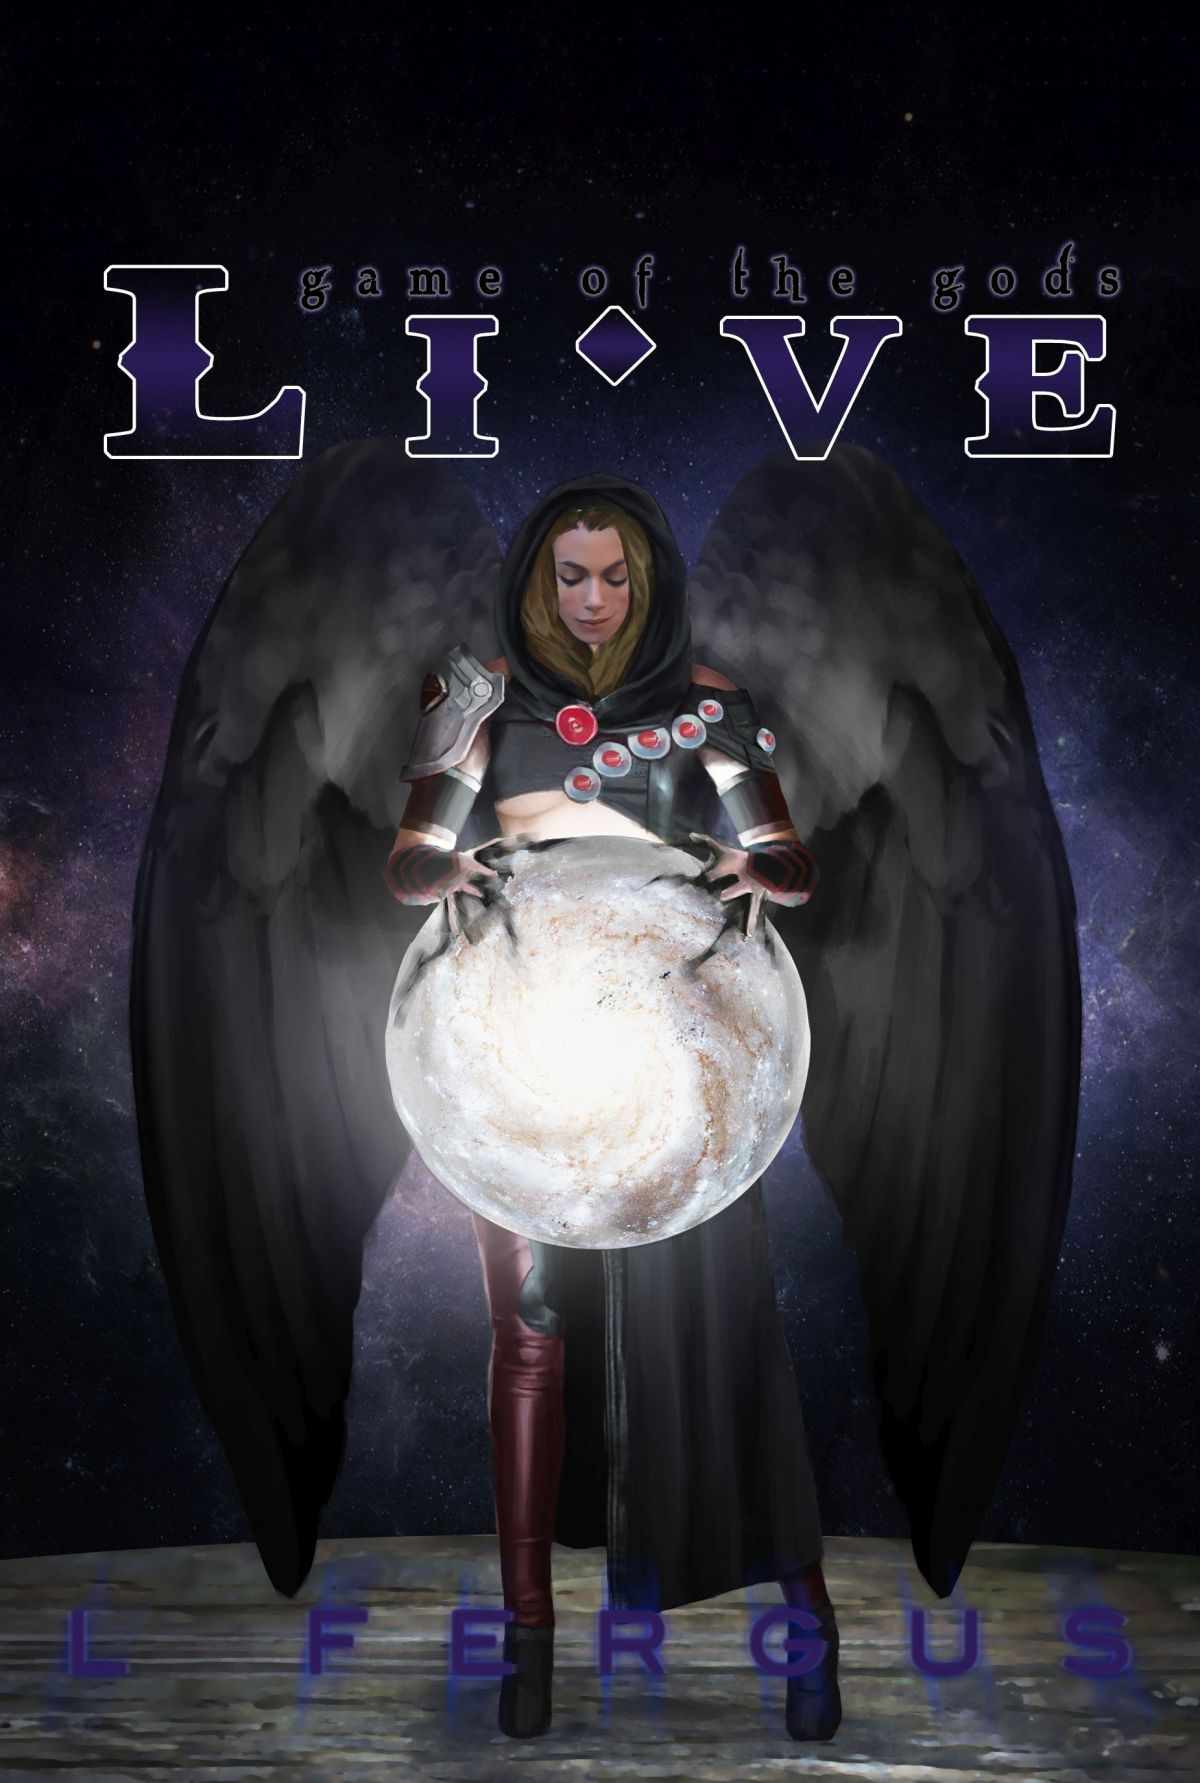 The FINAL Chapter of Li've is here!